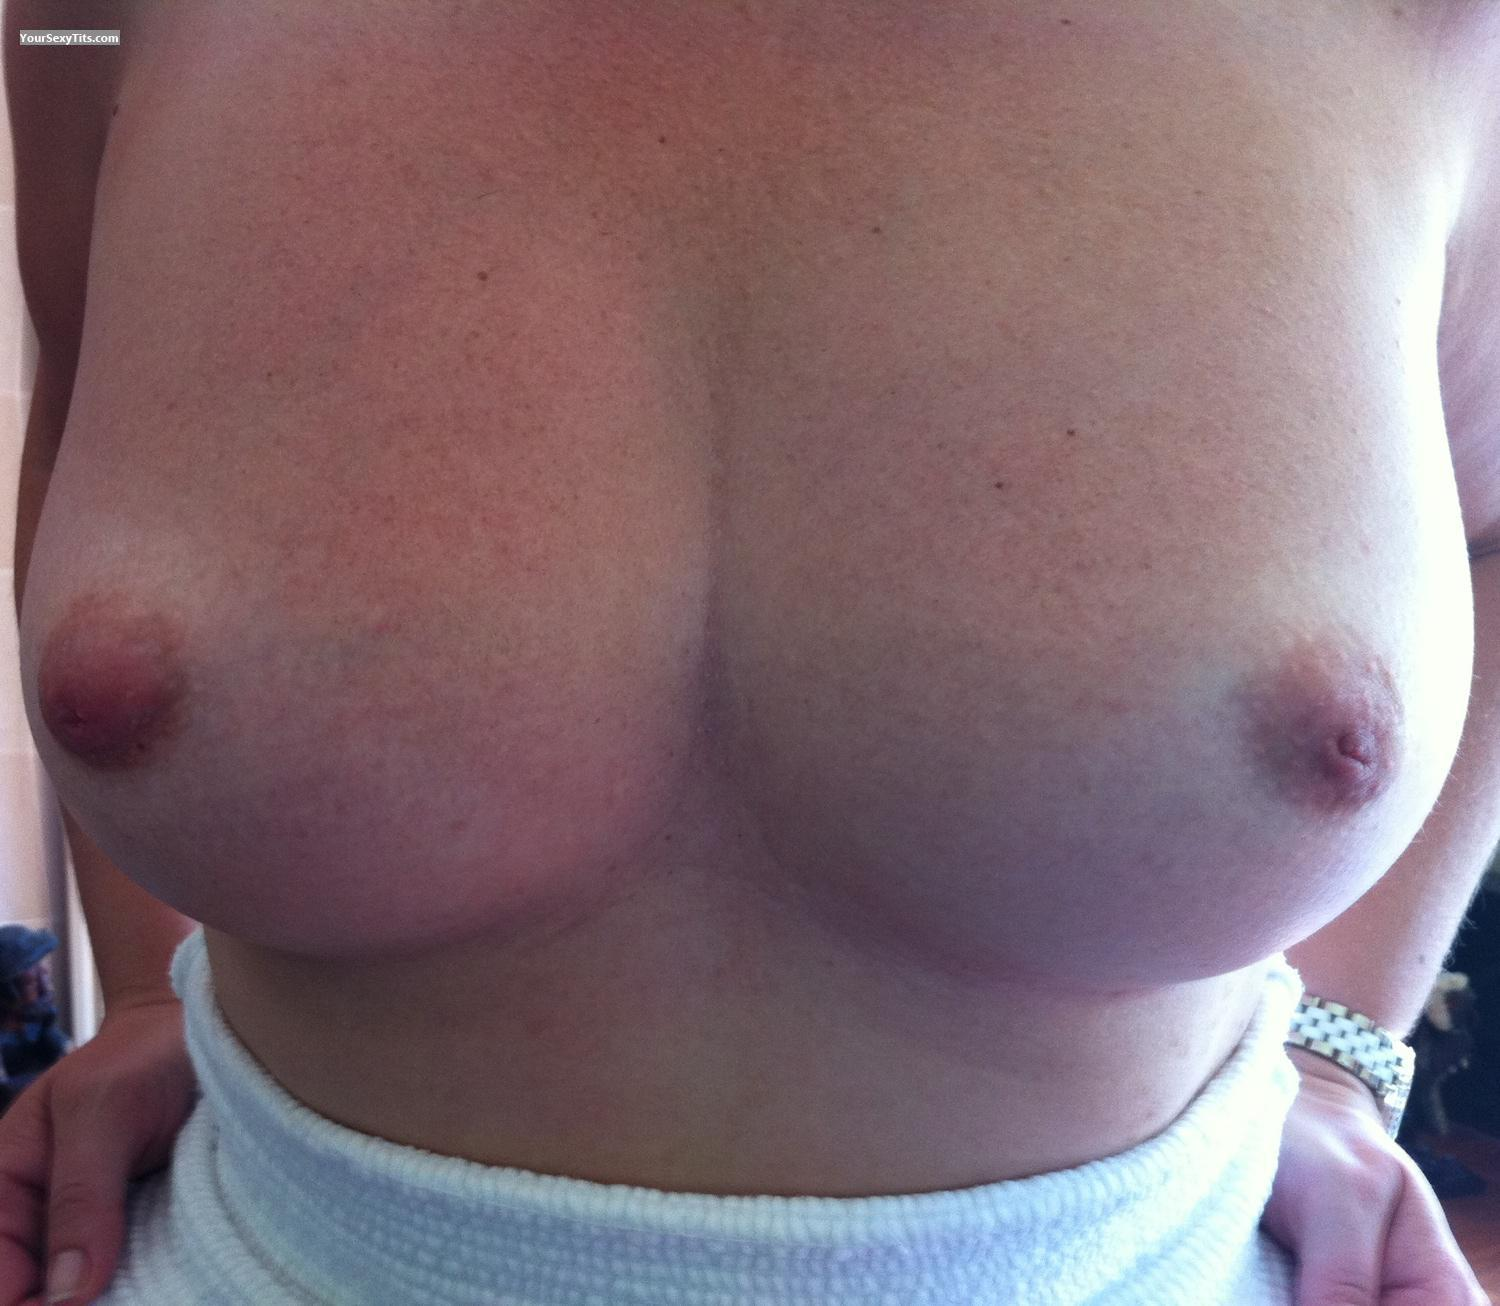 Tit Flash: Medium Tits By IPhone - Loa from Sweden